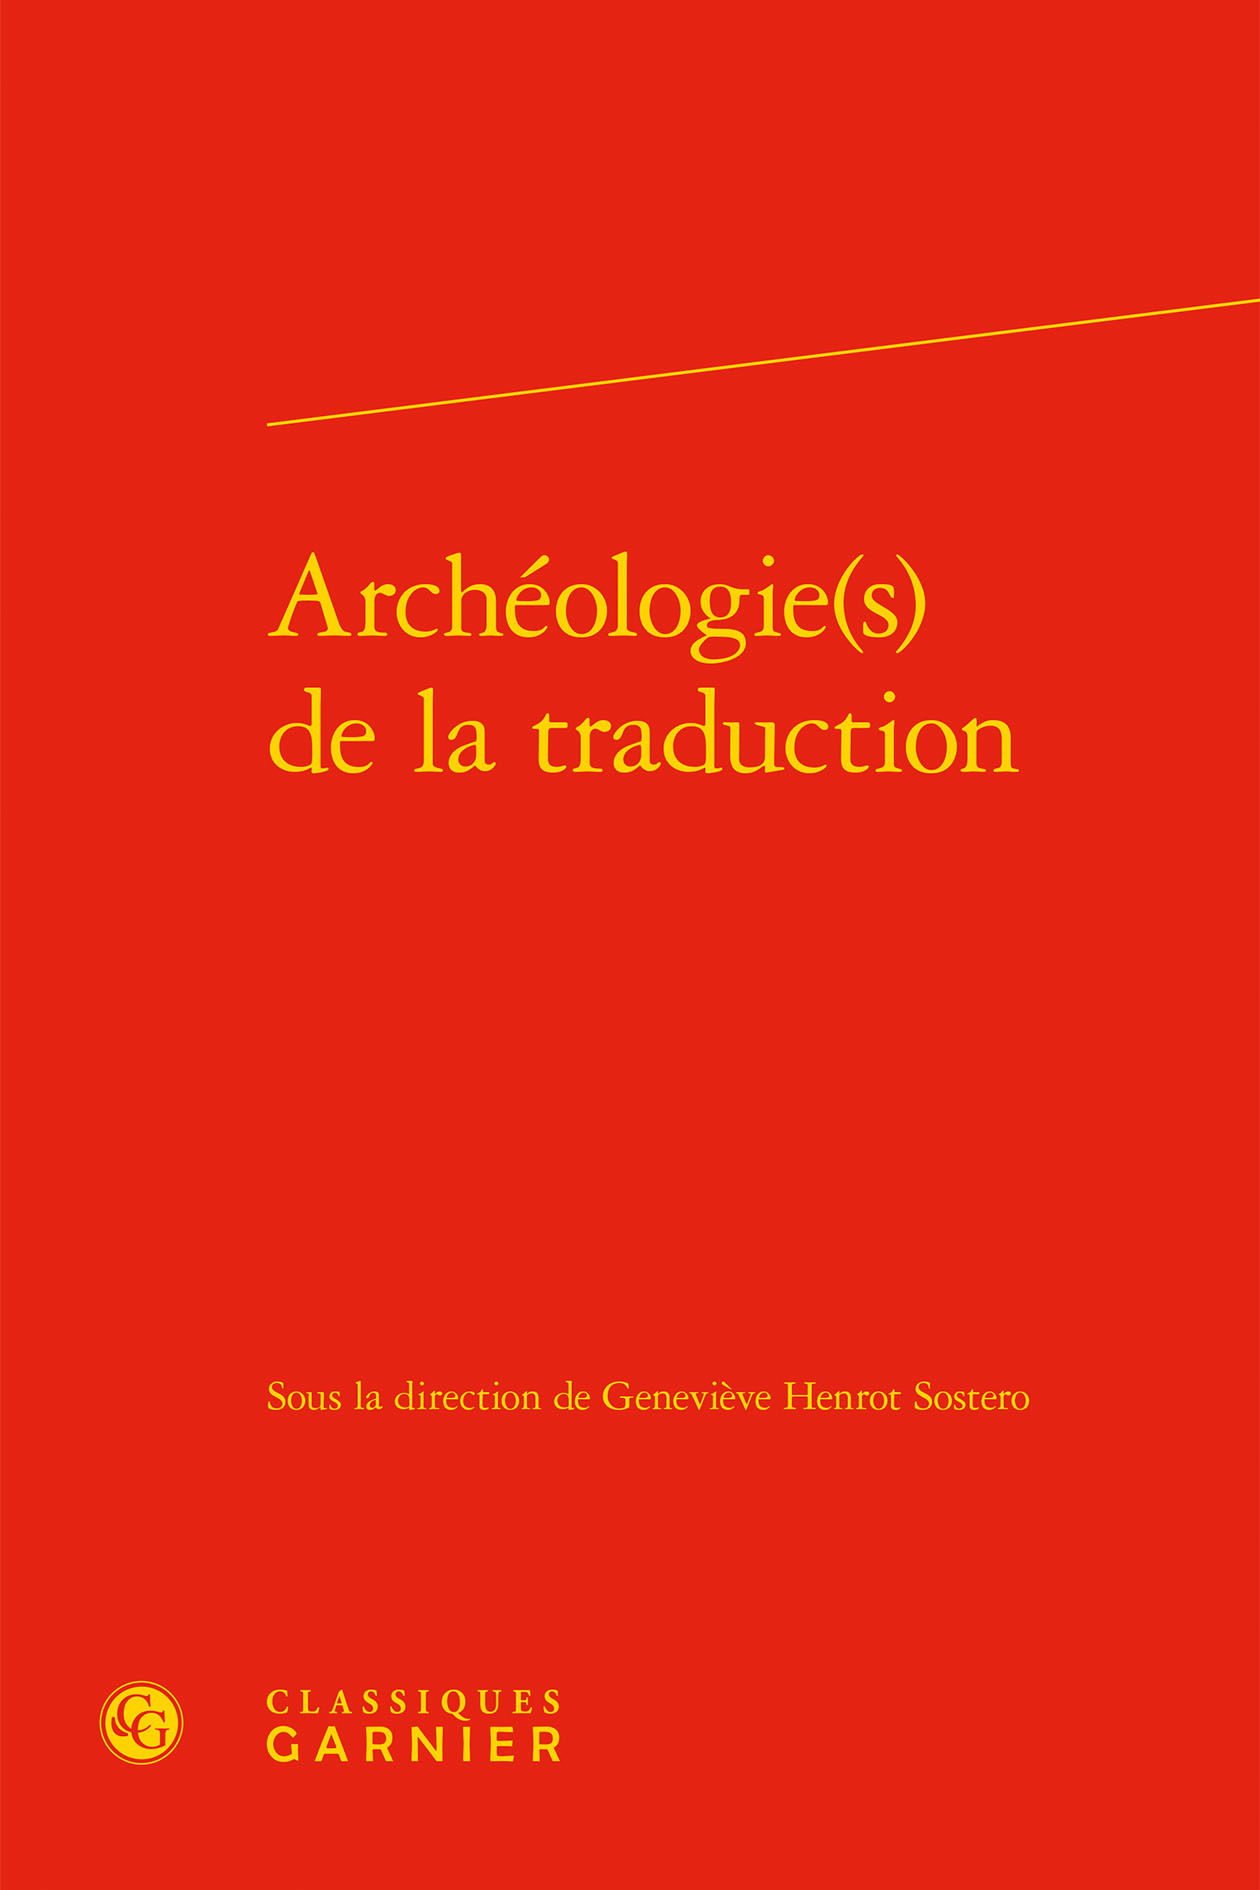 PROBLEMATIQUES DE TRADUCTION - T02 - ARCHEOLOGIE(S) DE LA TRADUCTION